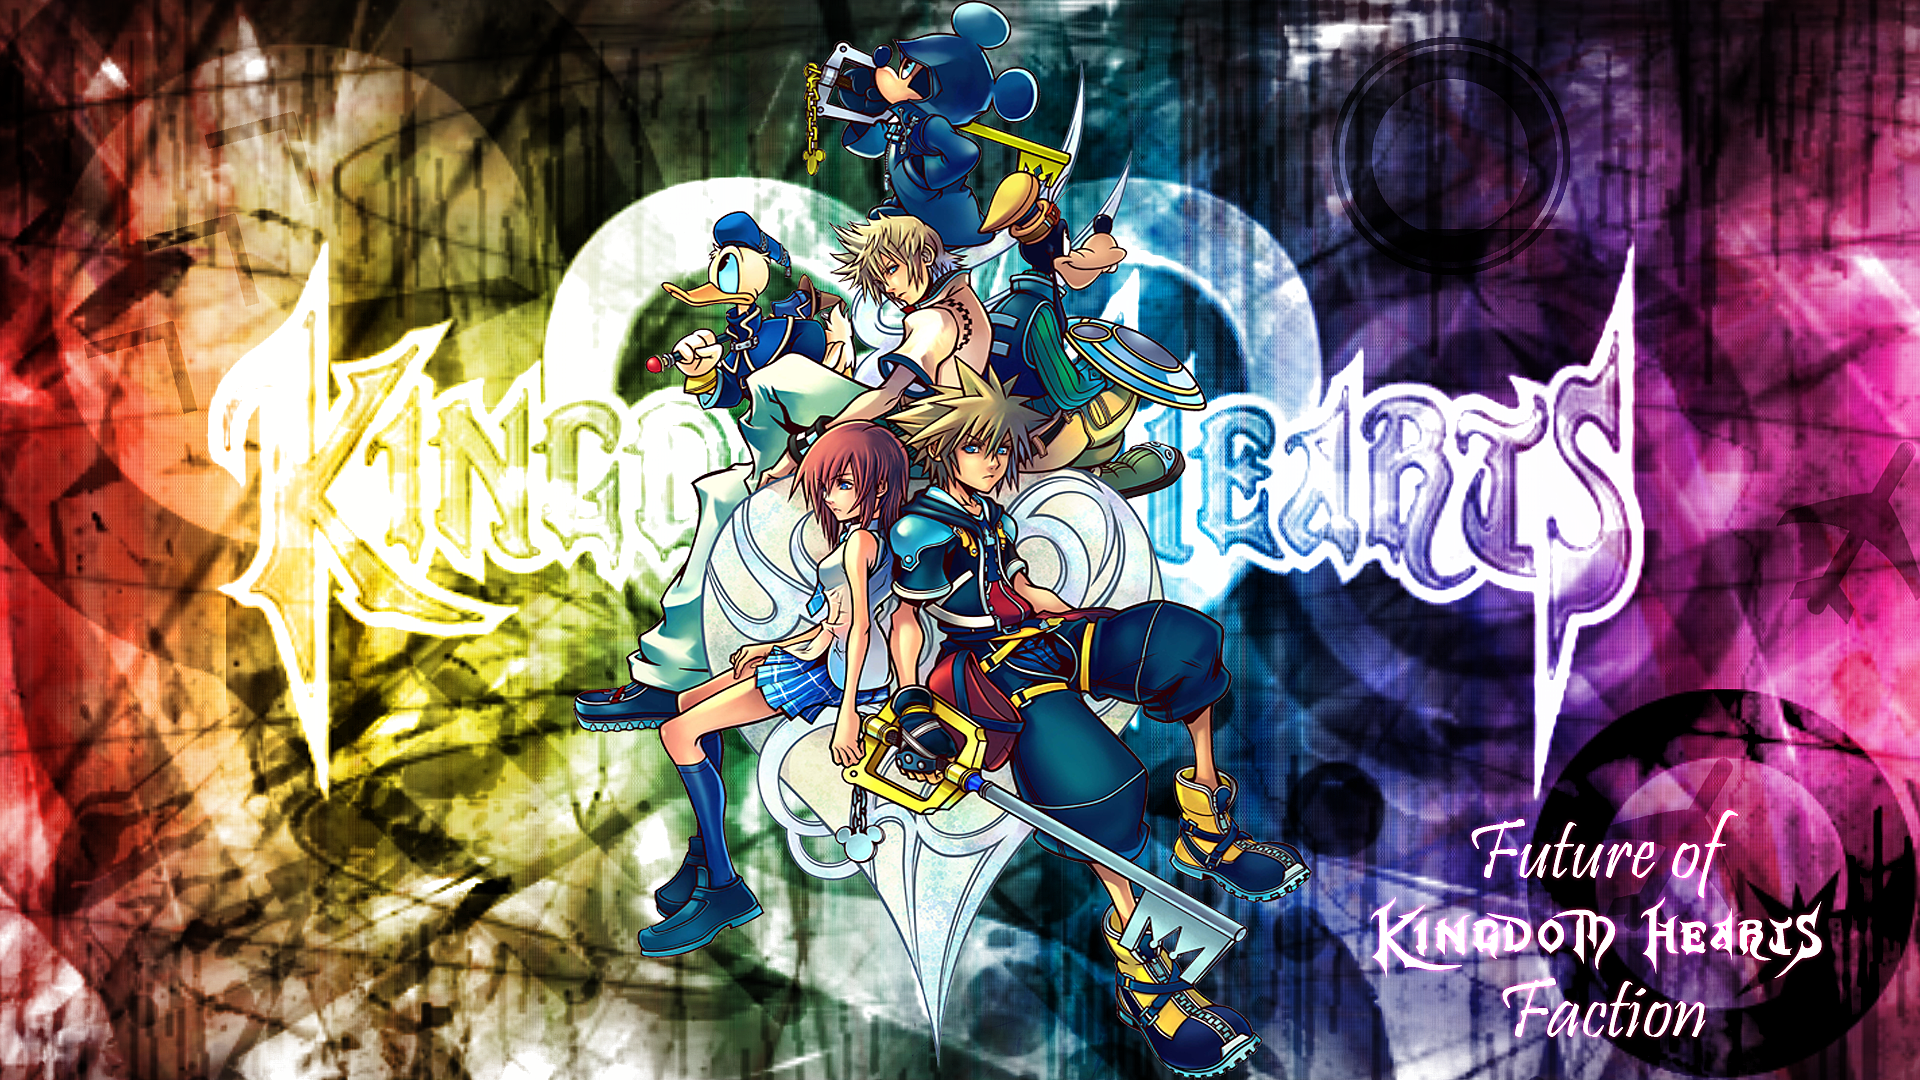 Kingdom Hearts 2 wallpapers Kingdom Hearts 2 background   Page 7 1920x1080